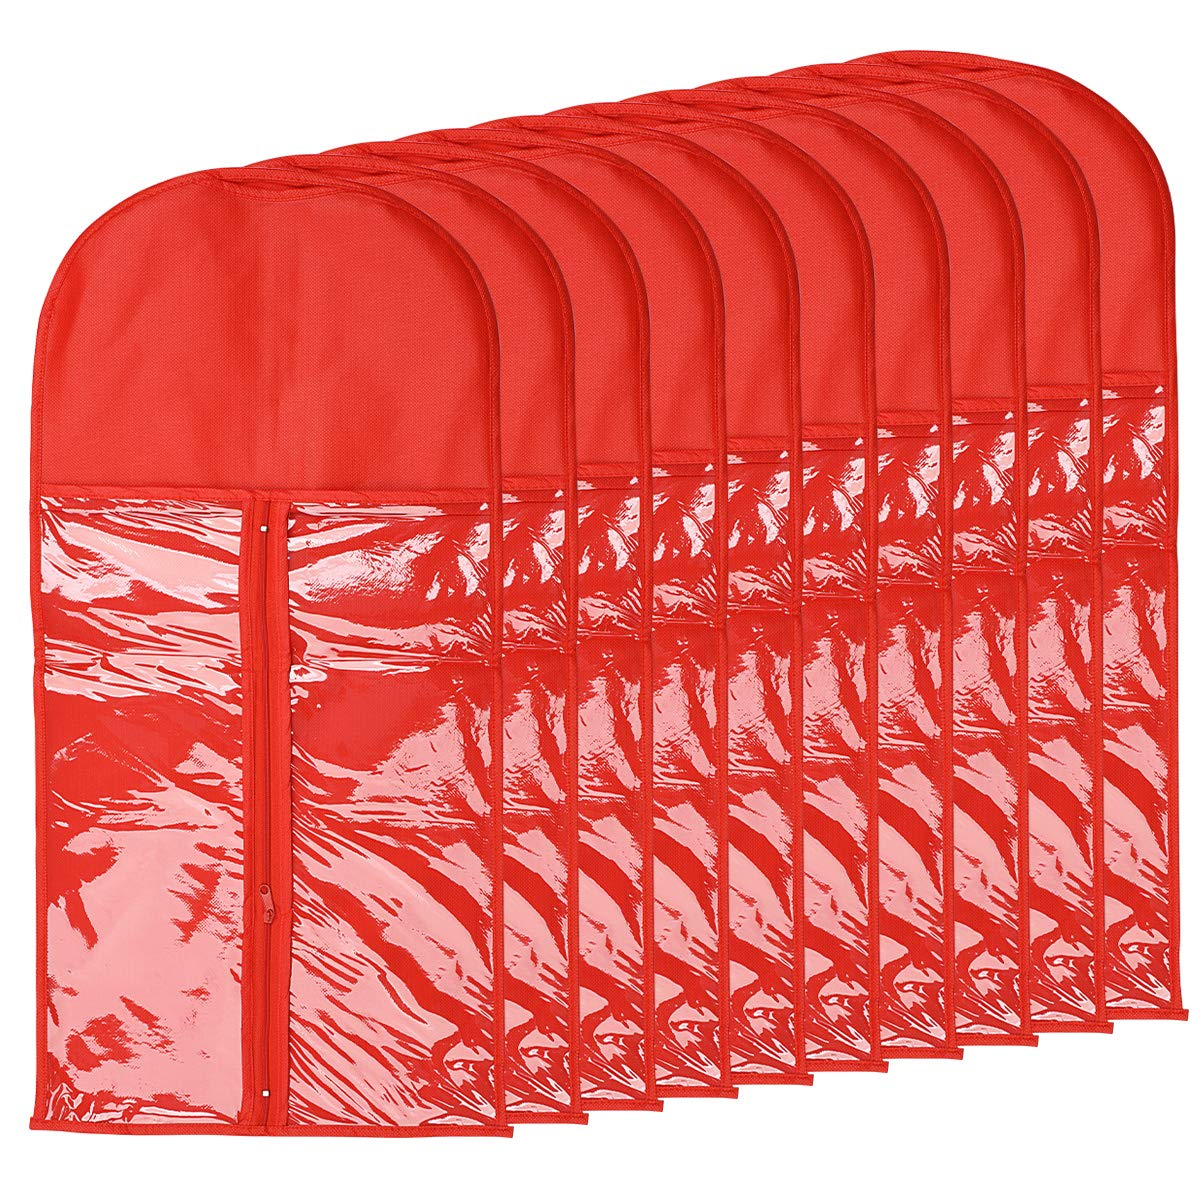 Wig Storage Bag Holder Case, Wigs Pouch Dust-Proof Organizer Protect for Professional Hair Extensions (Red)